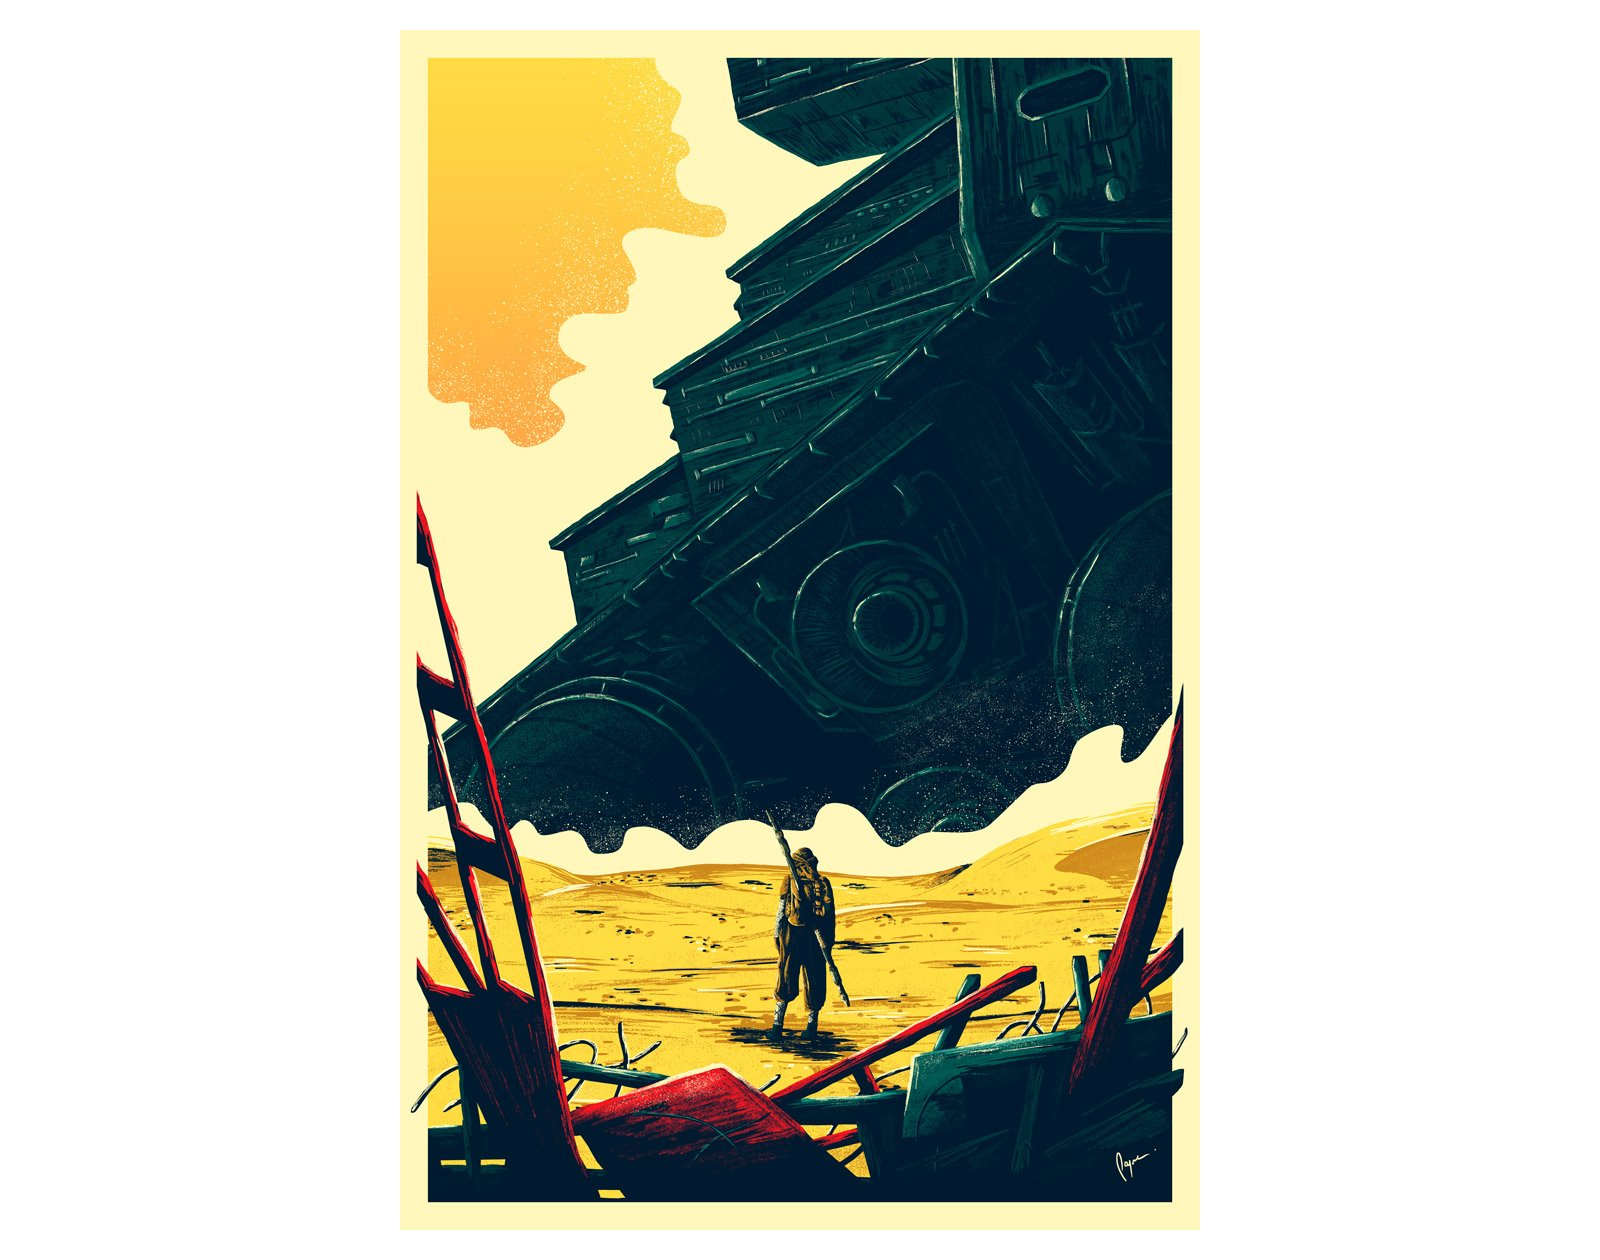 Deal: Star Wars Scavenger Poster